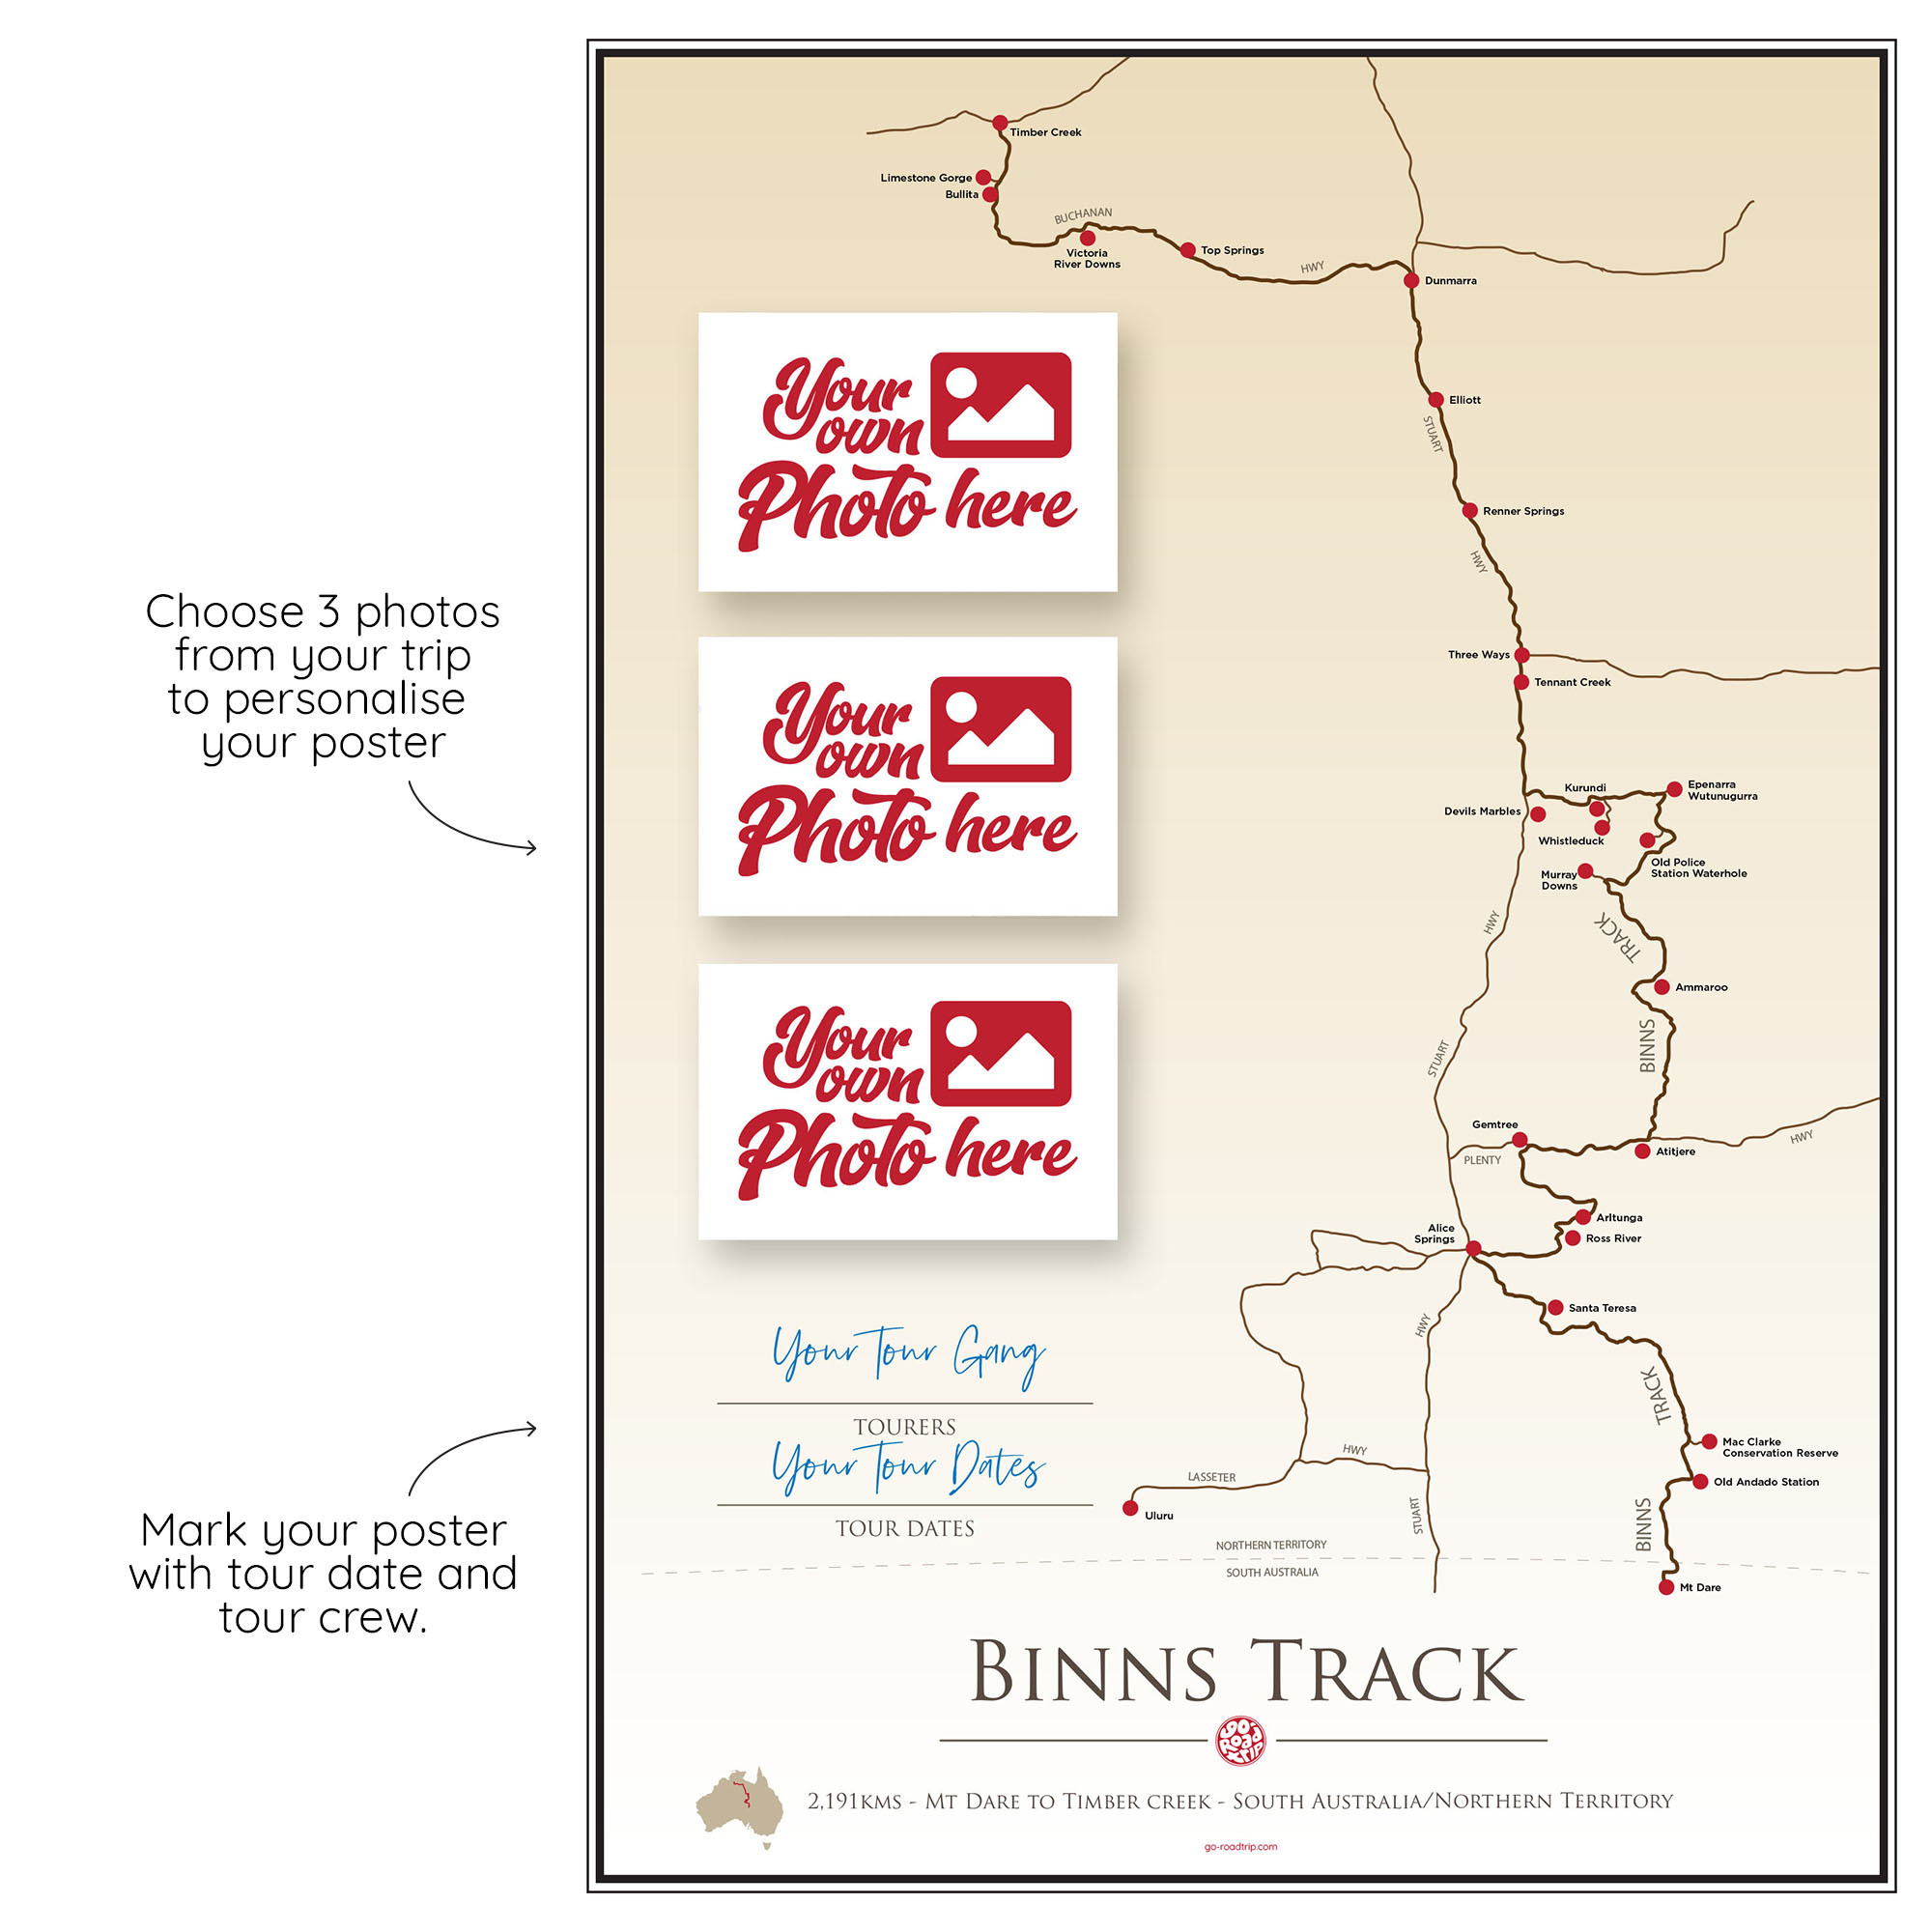 ICONIC TRACK: Binns Track Personal Poster